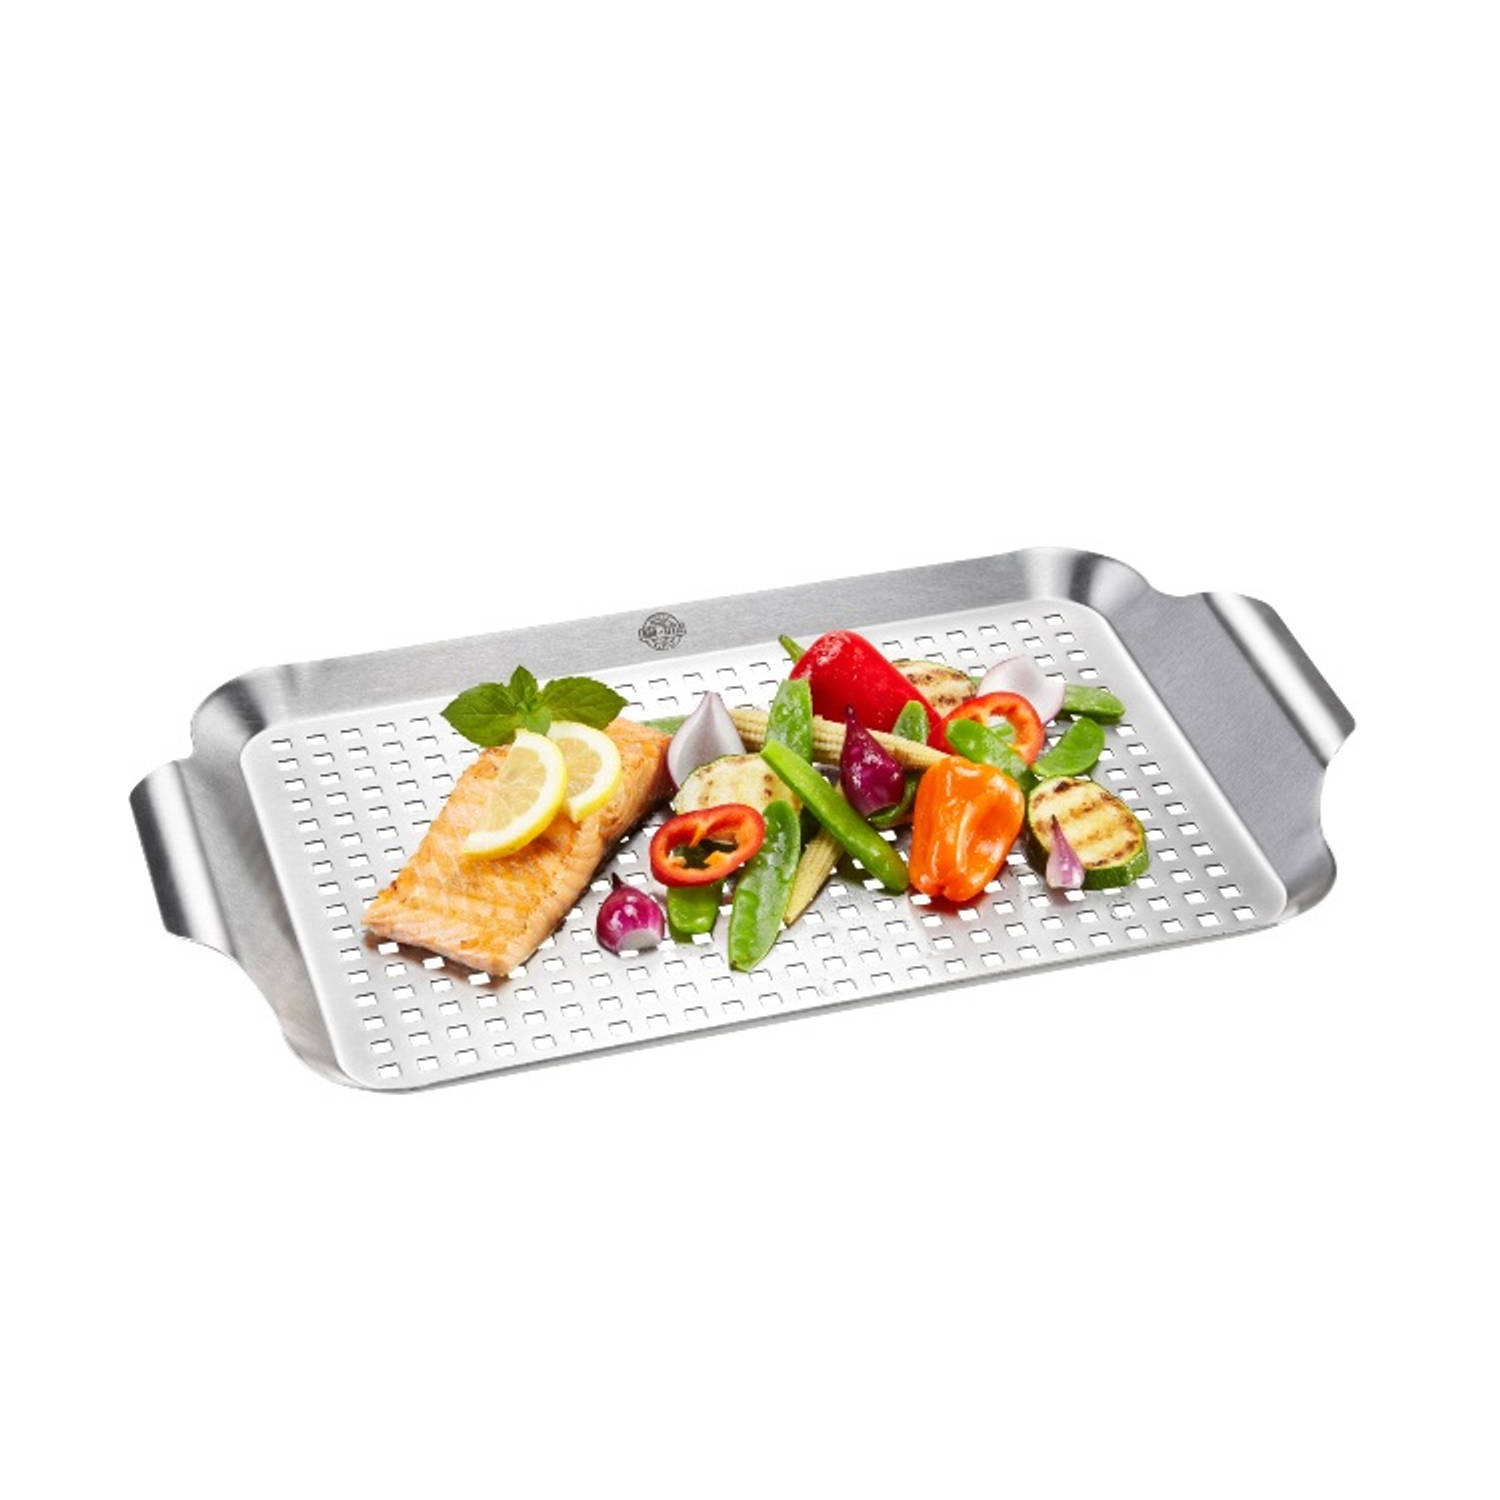 Grillpan Barbecue 43 cm x 25 cm Gefu